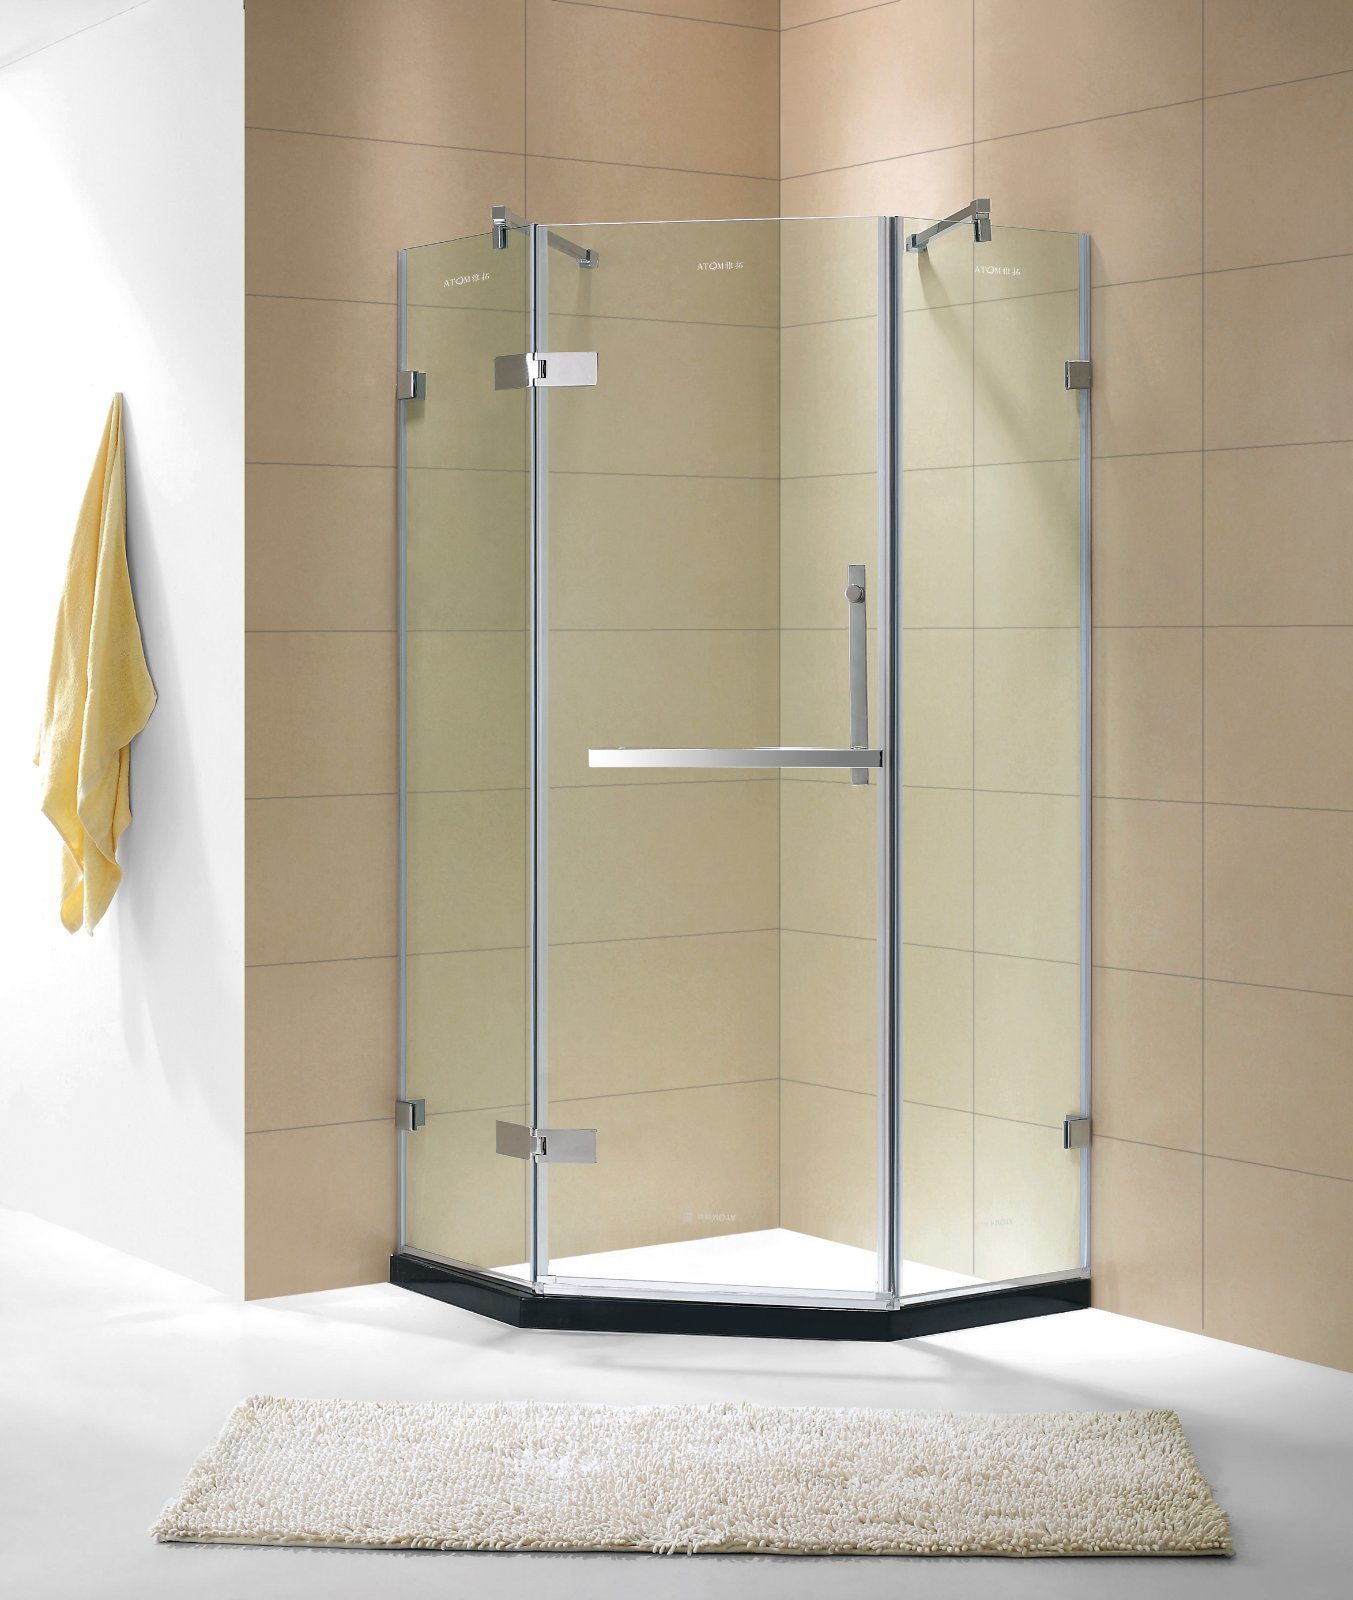 China 5/16′′ Toughened Glass Hinged Shower Enclosure with Diagonal ...